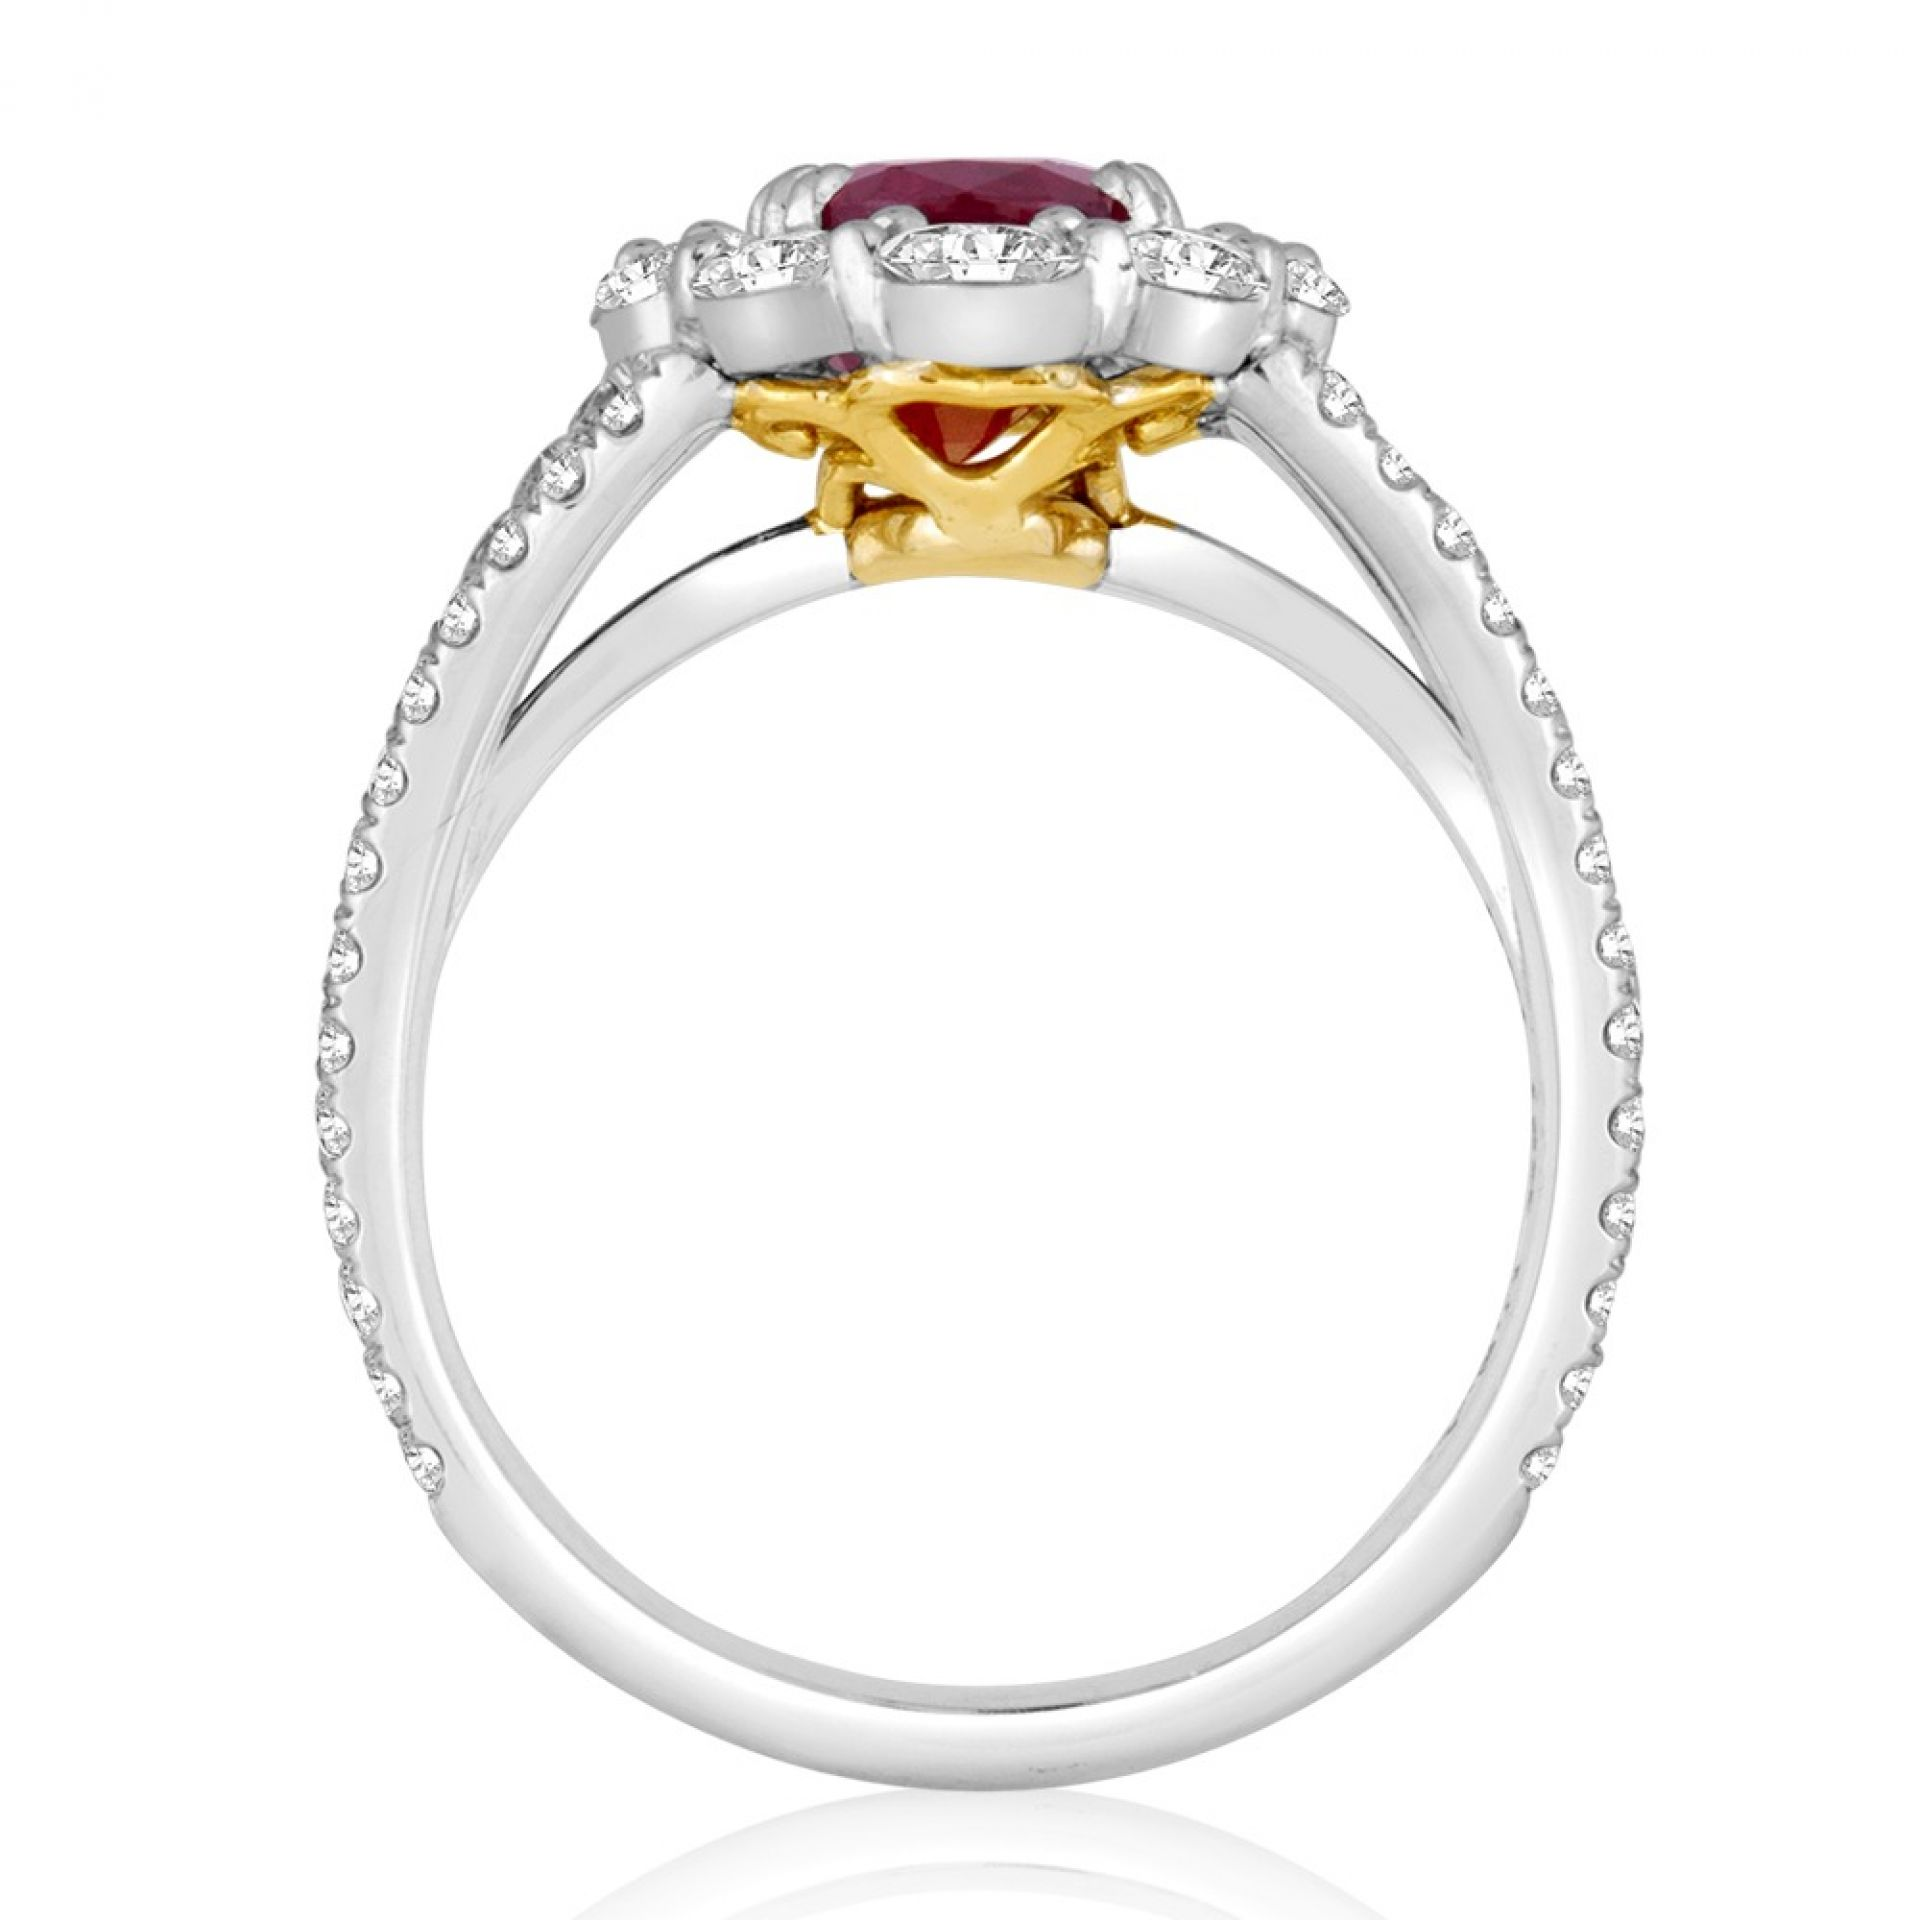 Pigeons Blood GIA Certified No Heat Burma Ruby Oval Halo Two Color Gold Ring